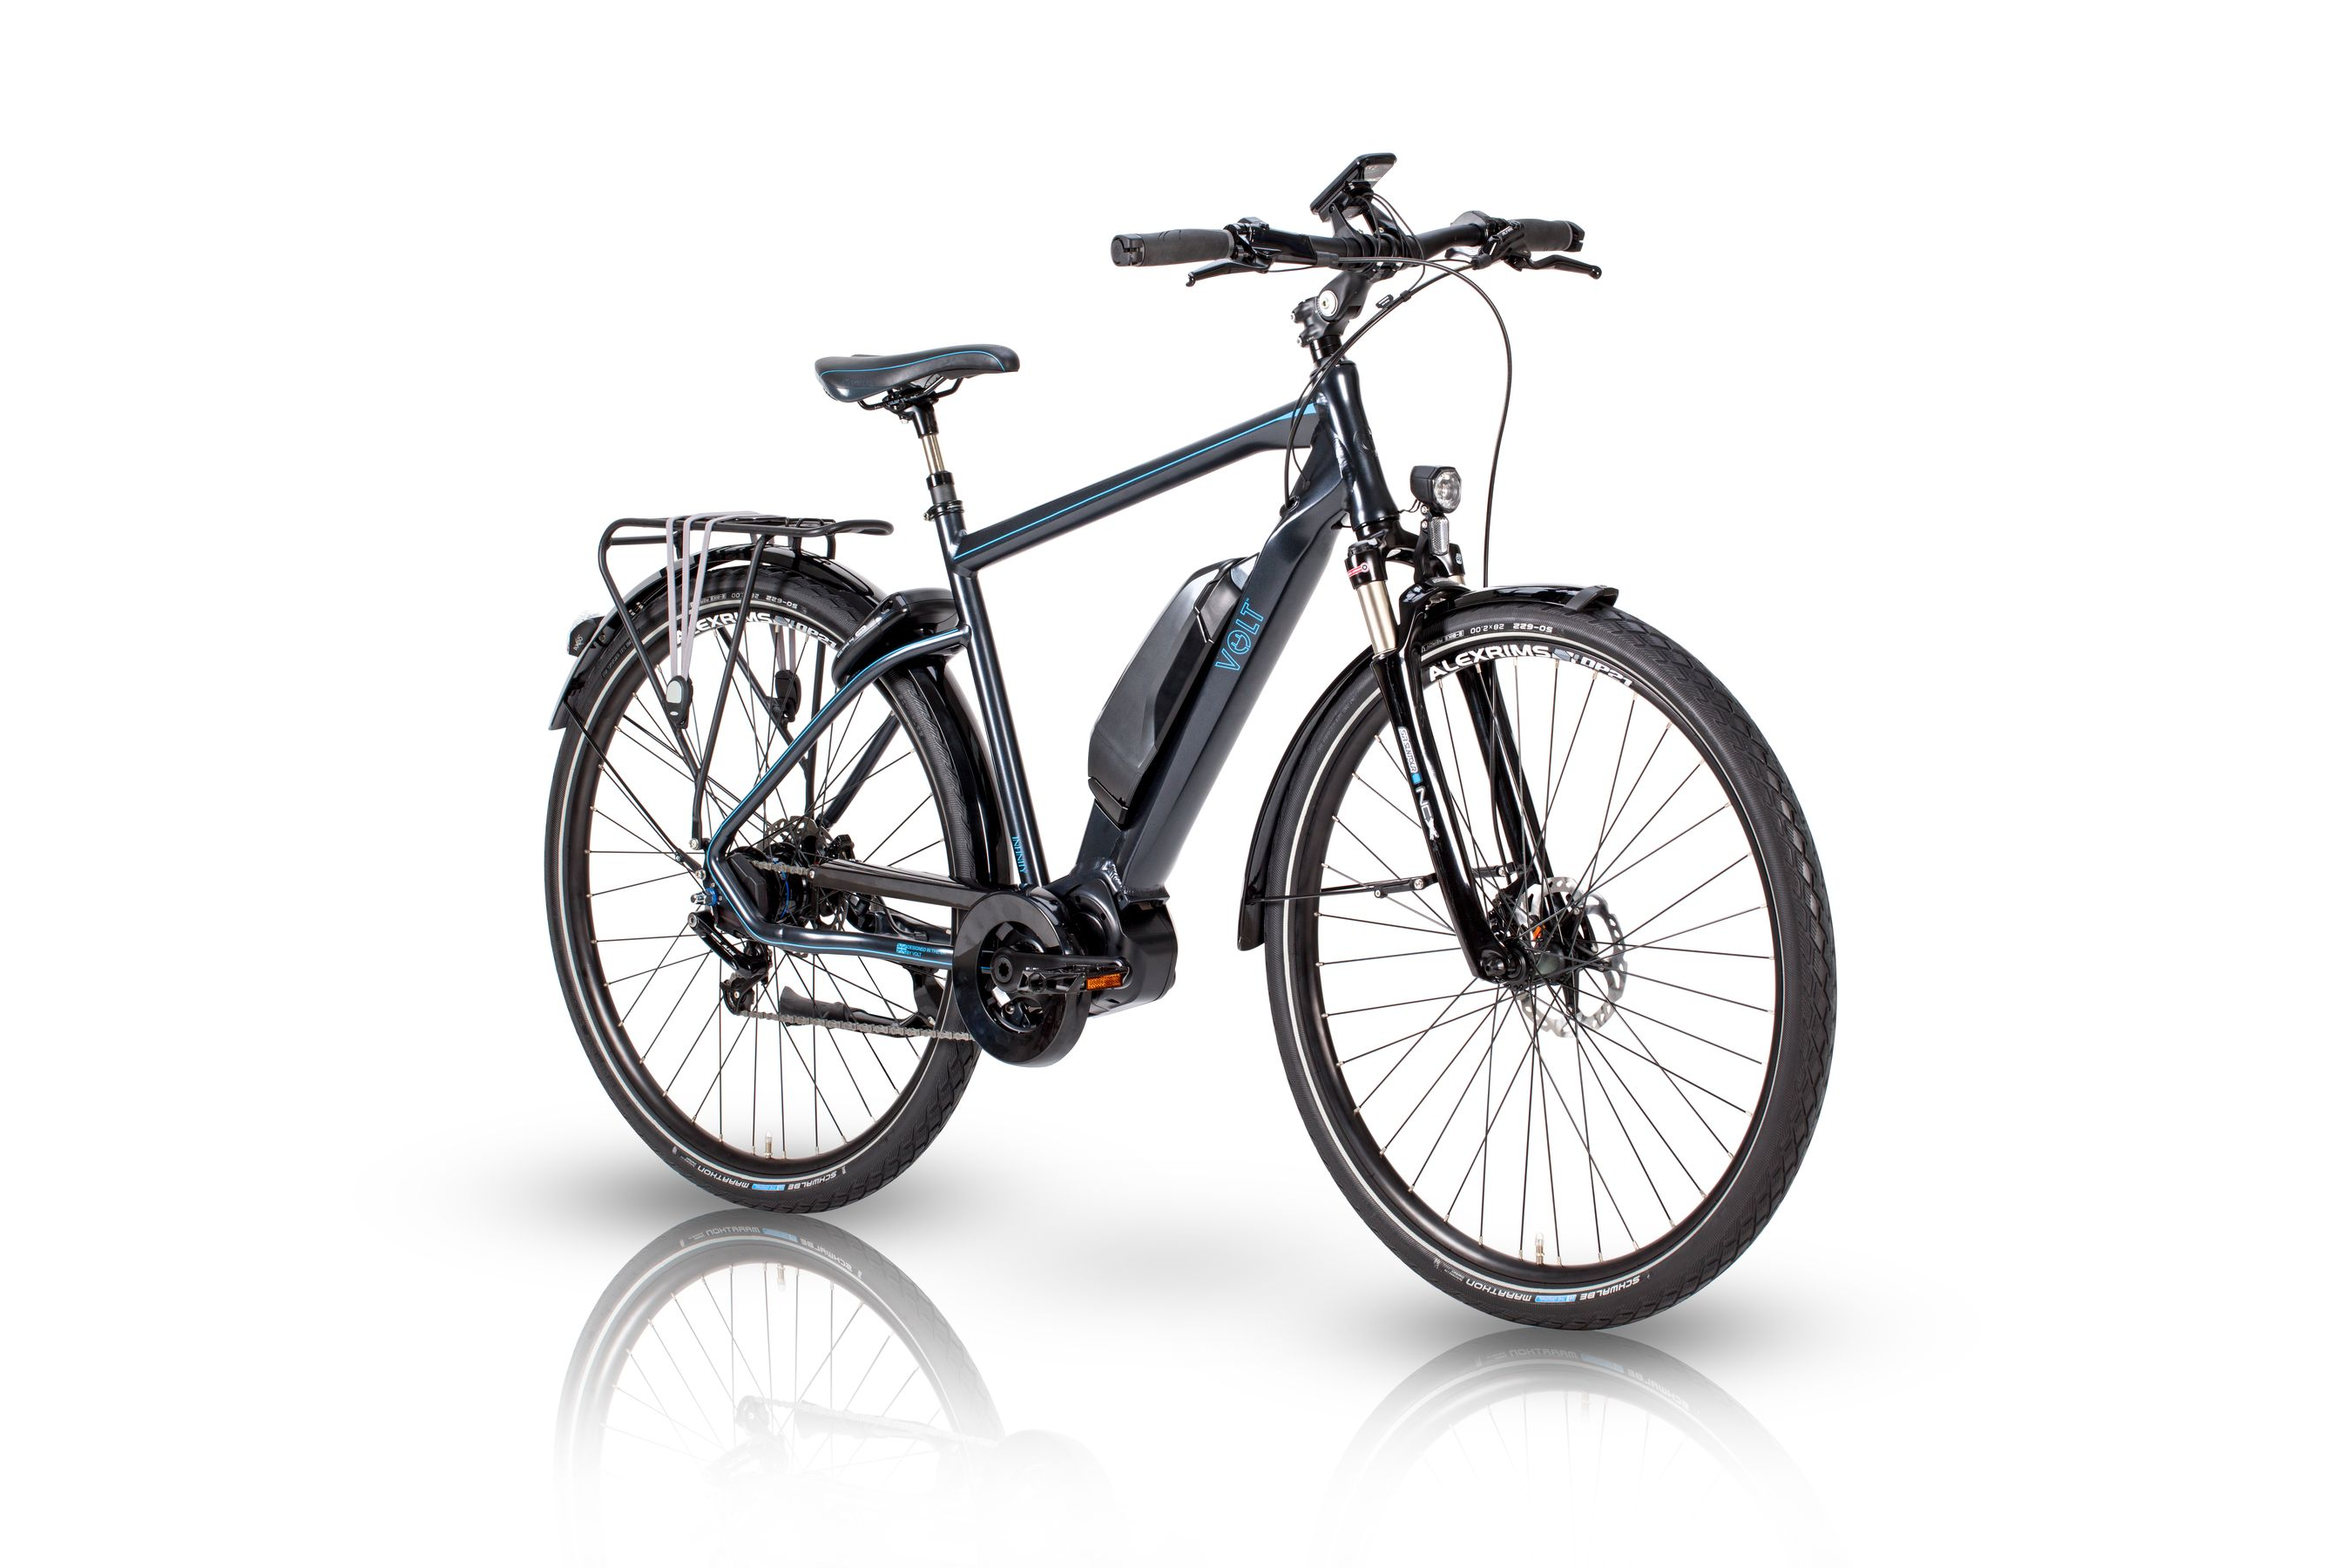 Infinity 2020 Model Shimano STEPS e-bike from Volt